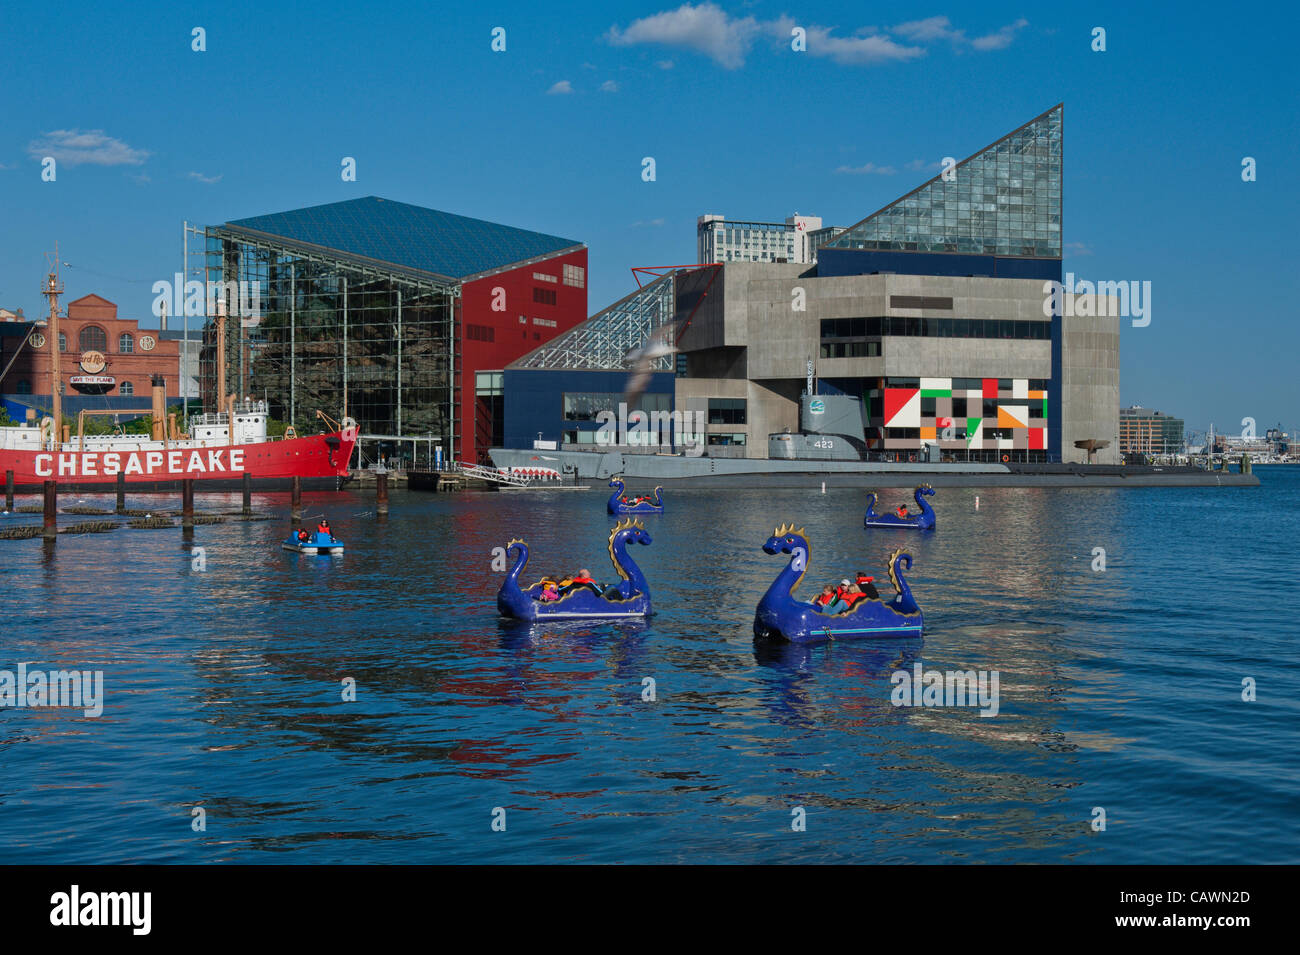 baltimore-usa-27-april-2012-brightly-colored-paddle-boats-called-chessie-CAWN2D.jpg